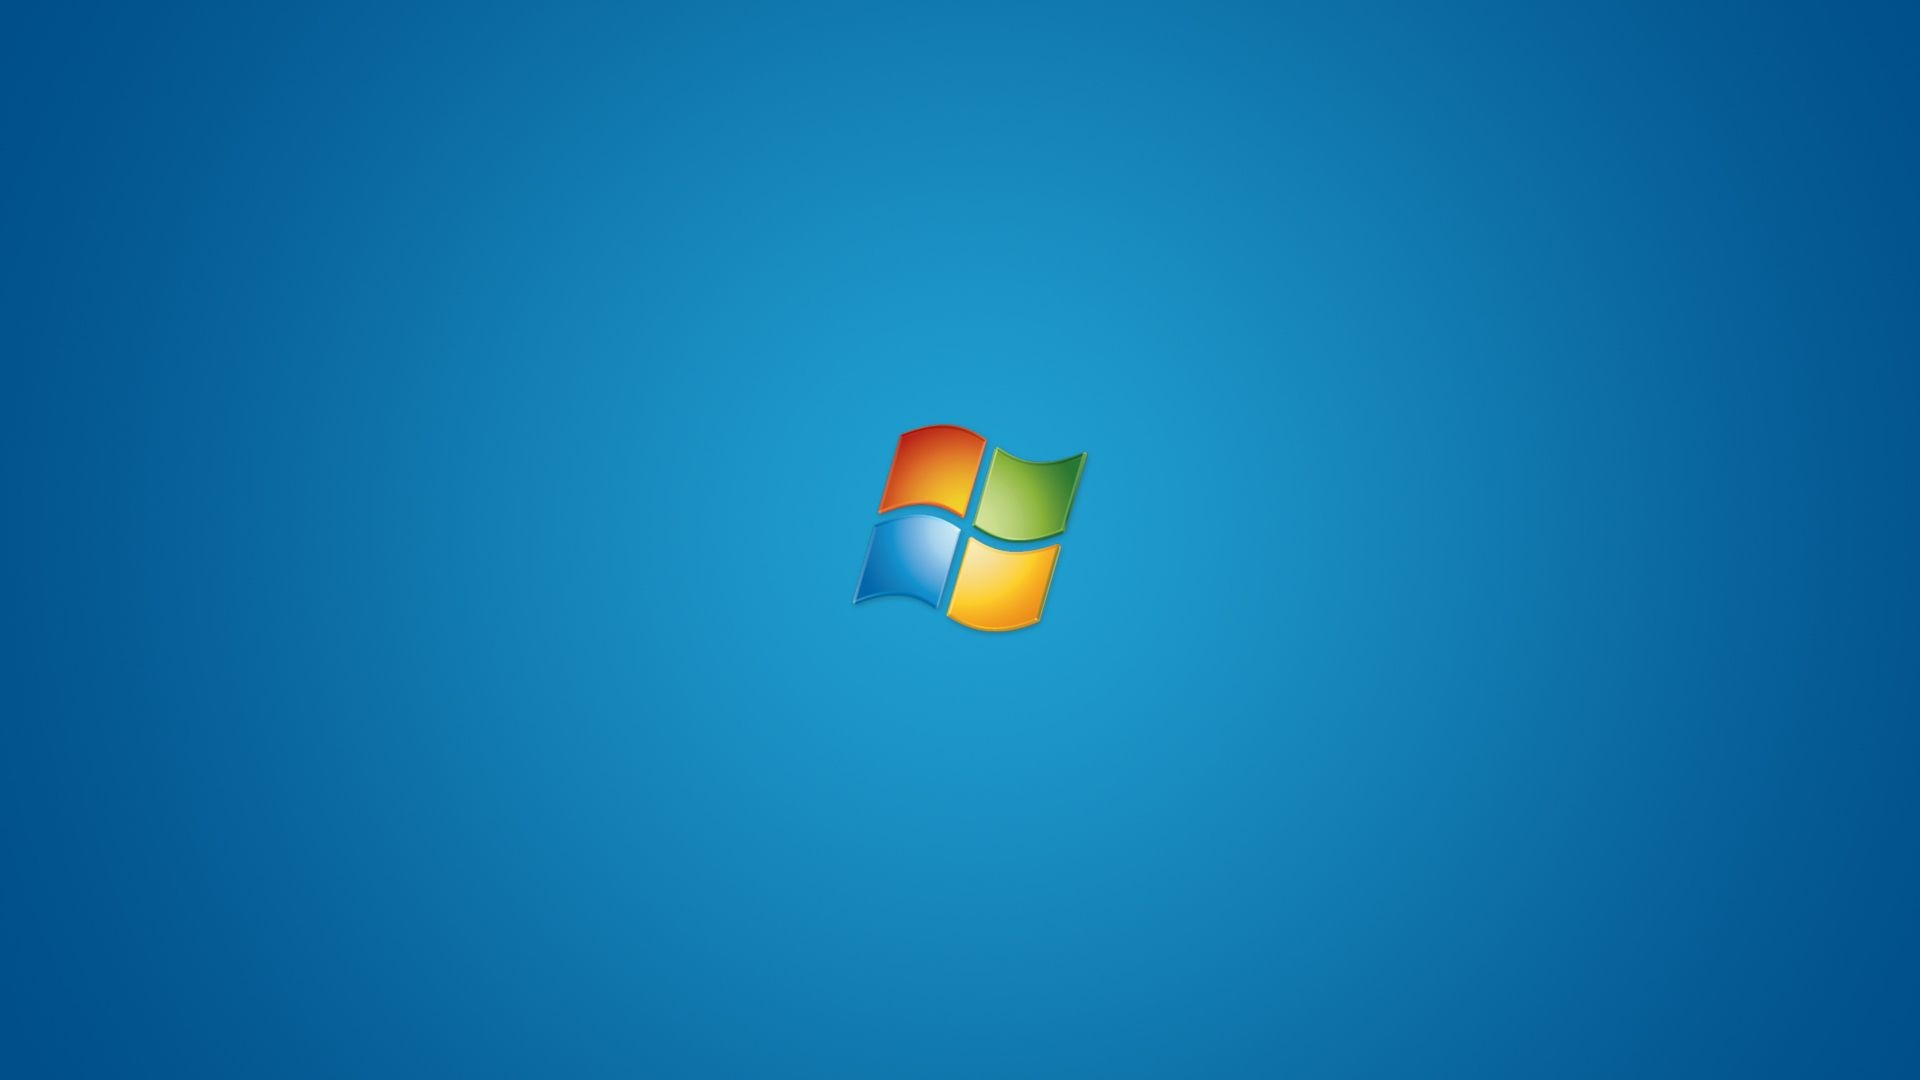 Hd desktop wallpapers windows 10 80 images - Hd wallpapers for pc windows ...